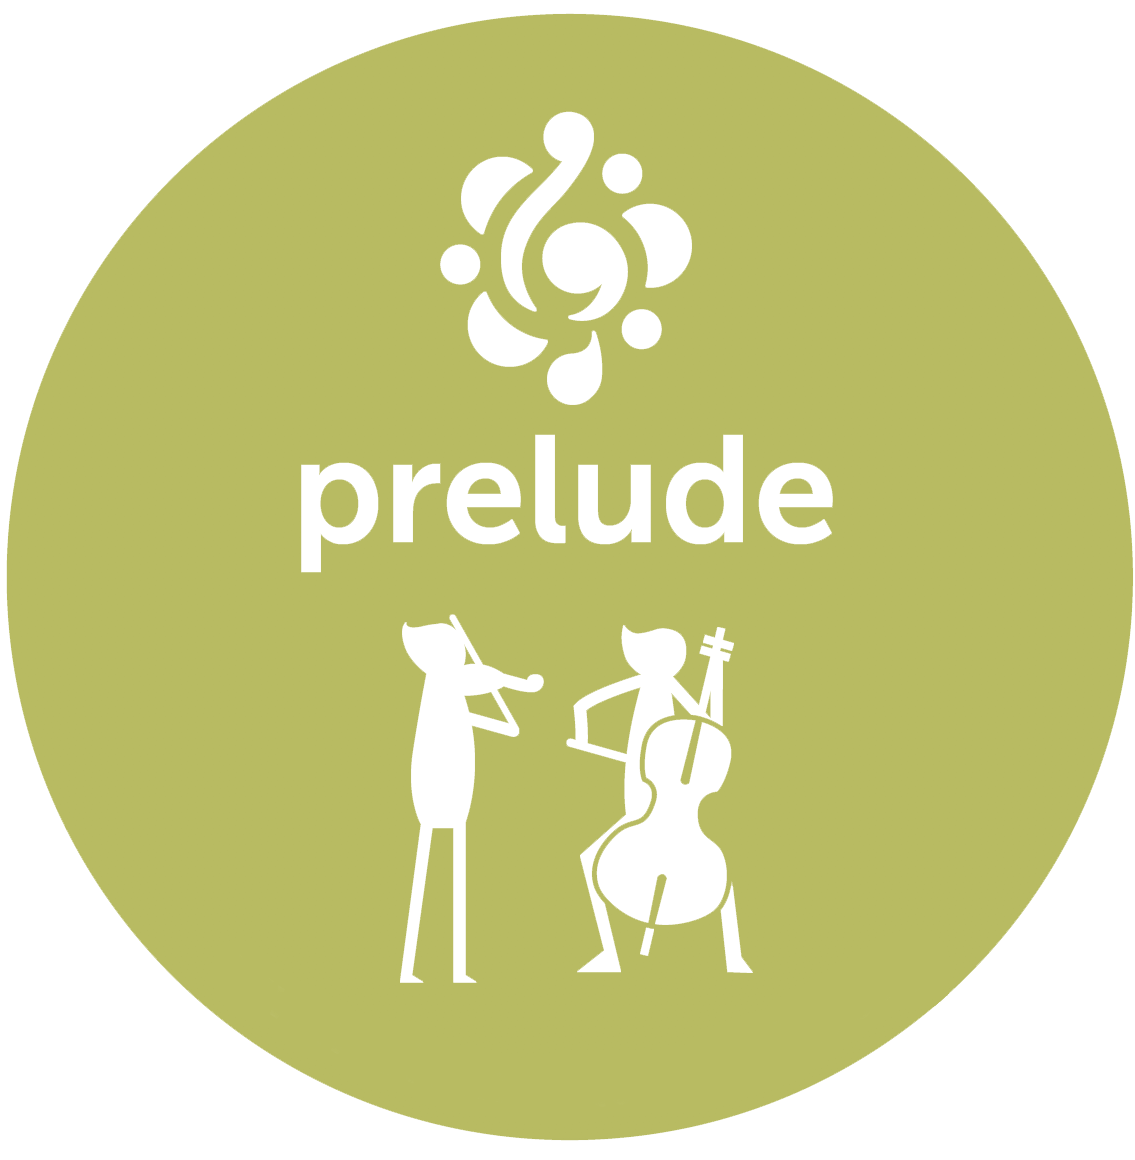 prelude_program_sticker.png